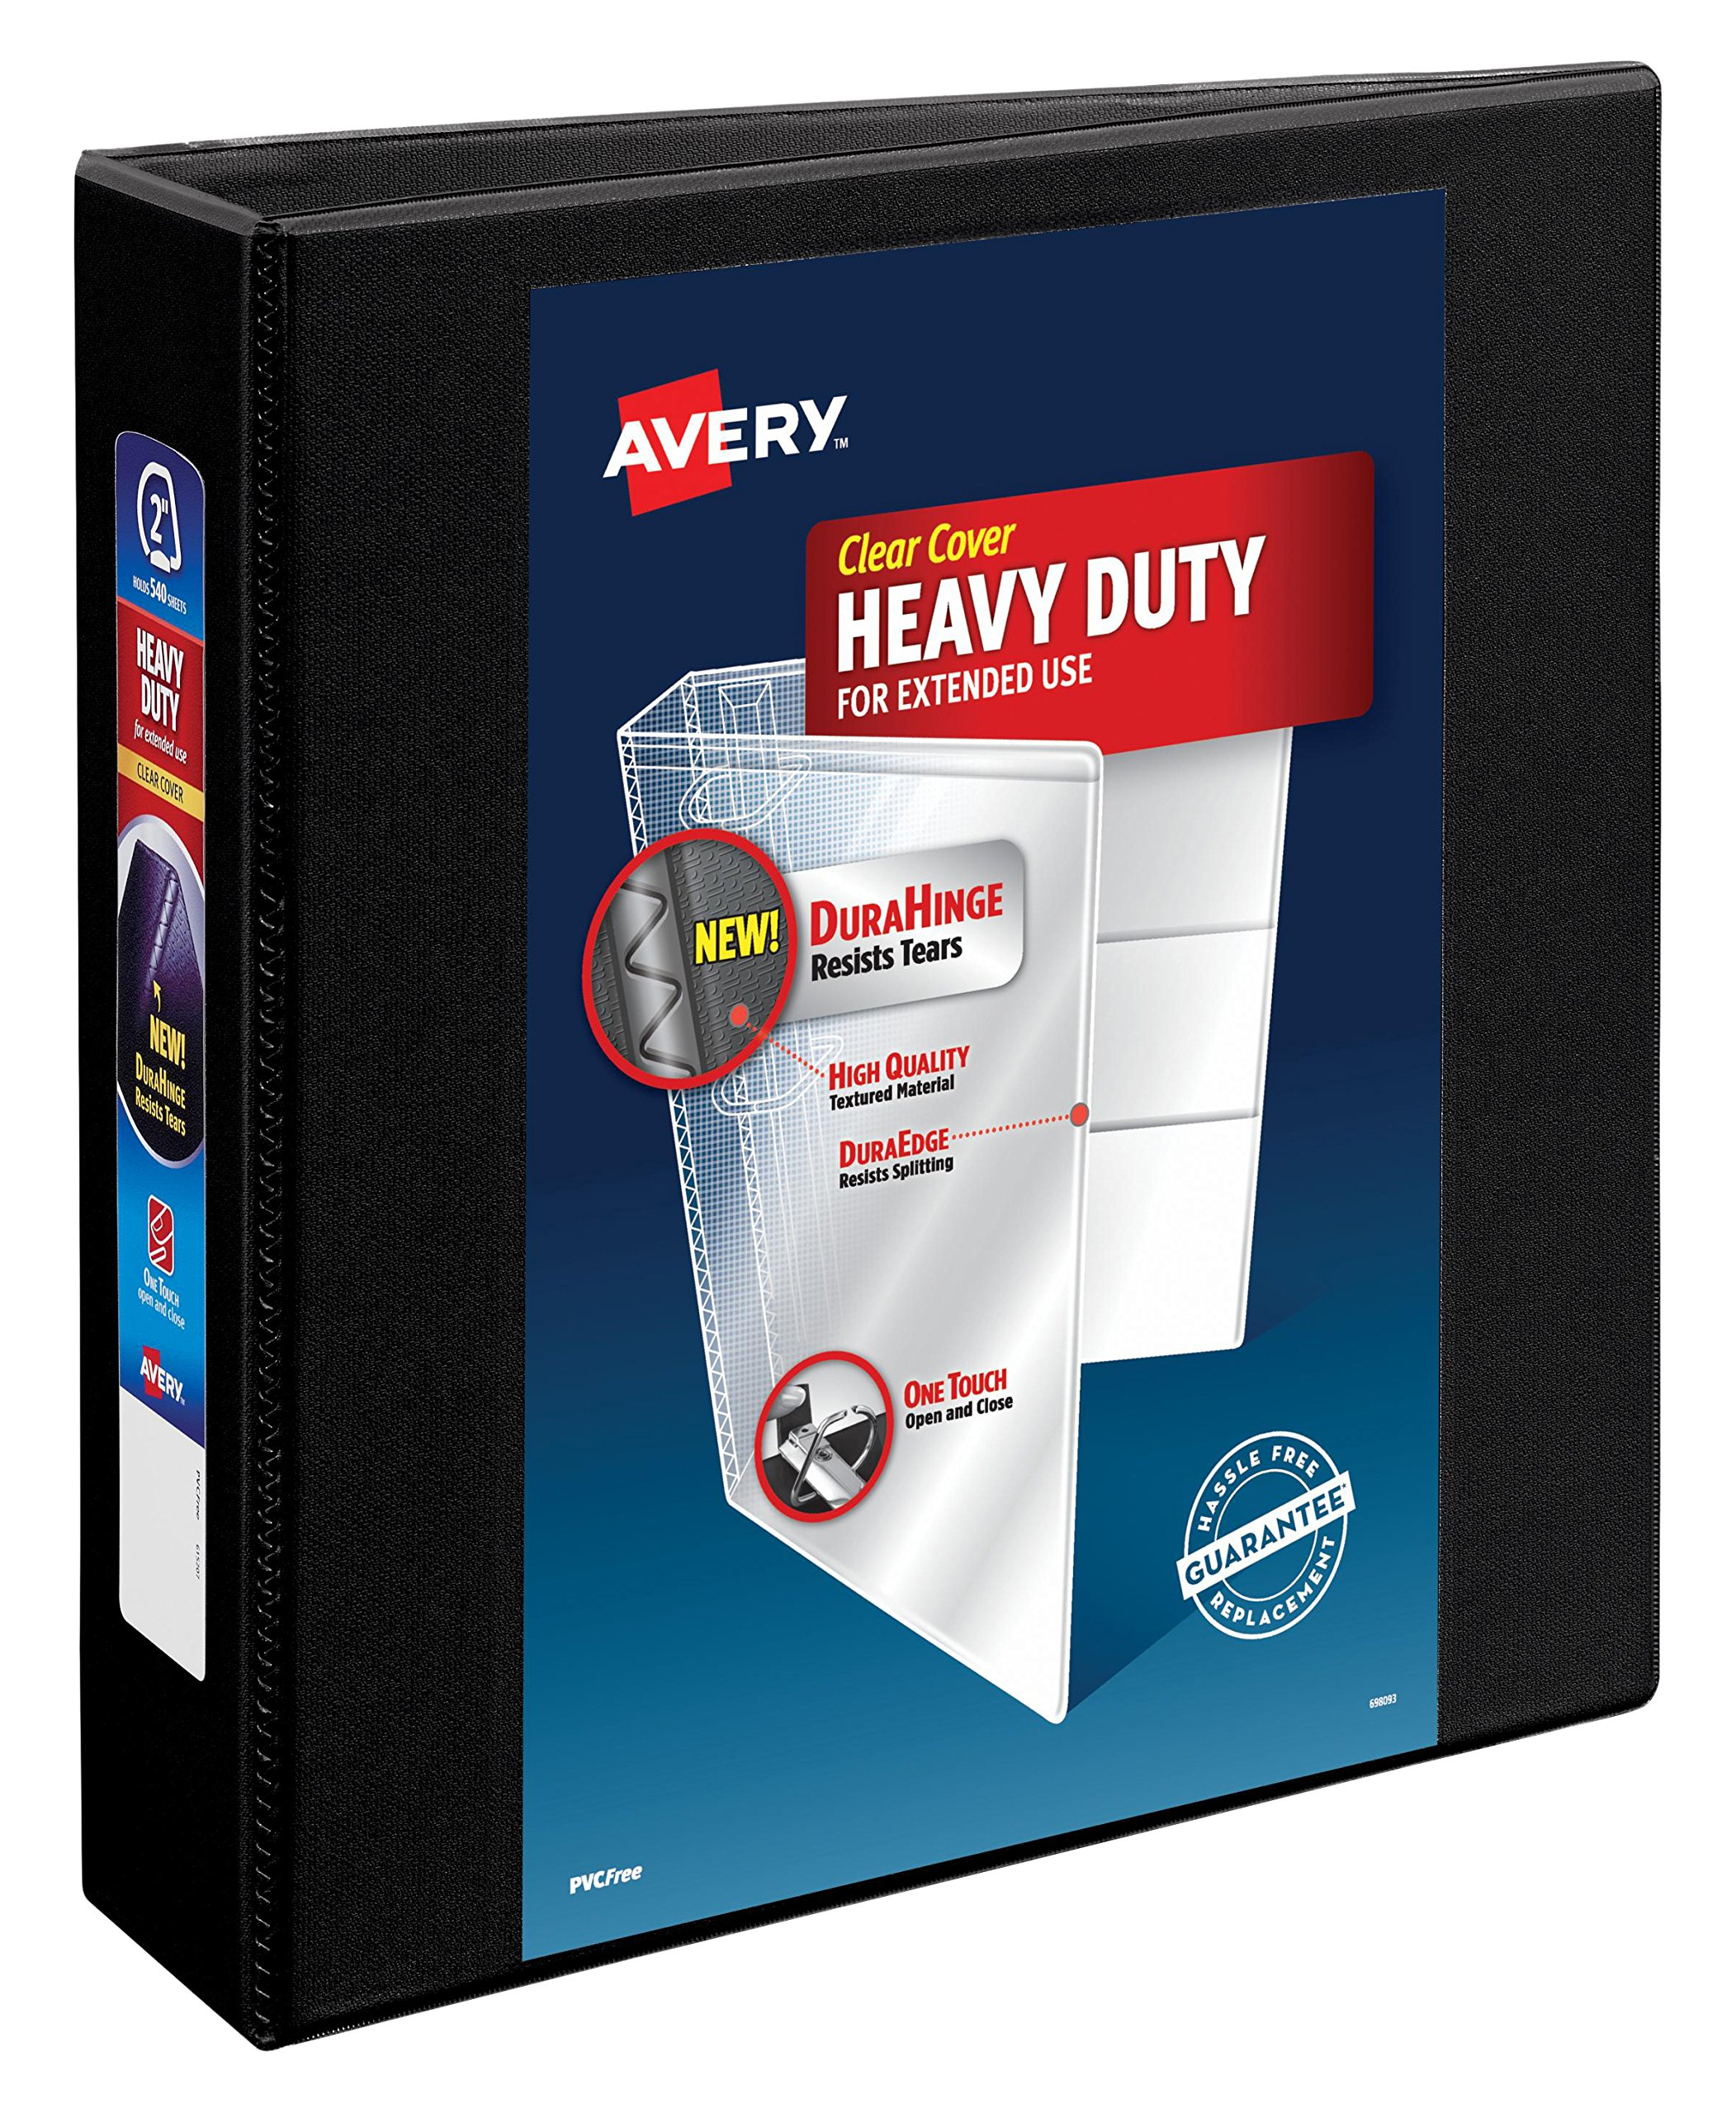 Avery Heavy Duty View 3 Ring Binder, 2'' One Touch EZD Ring, Holds 8.5'' x 11'' Paper, 6 Black Binders (79692) by AVERY